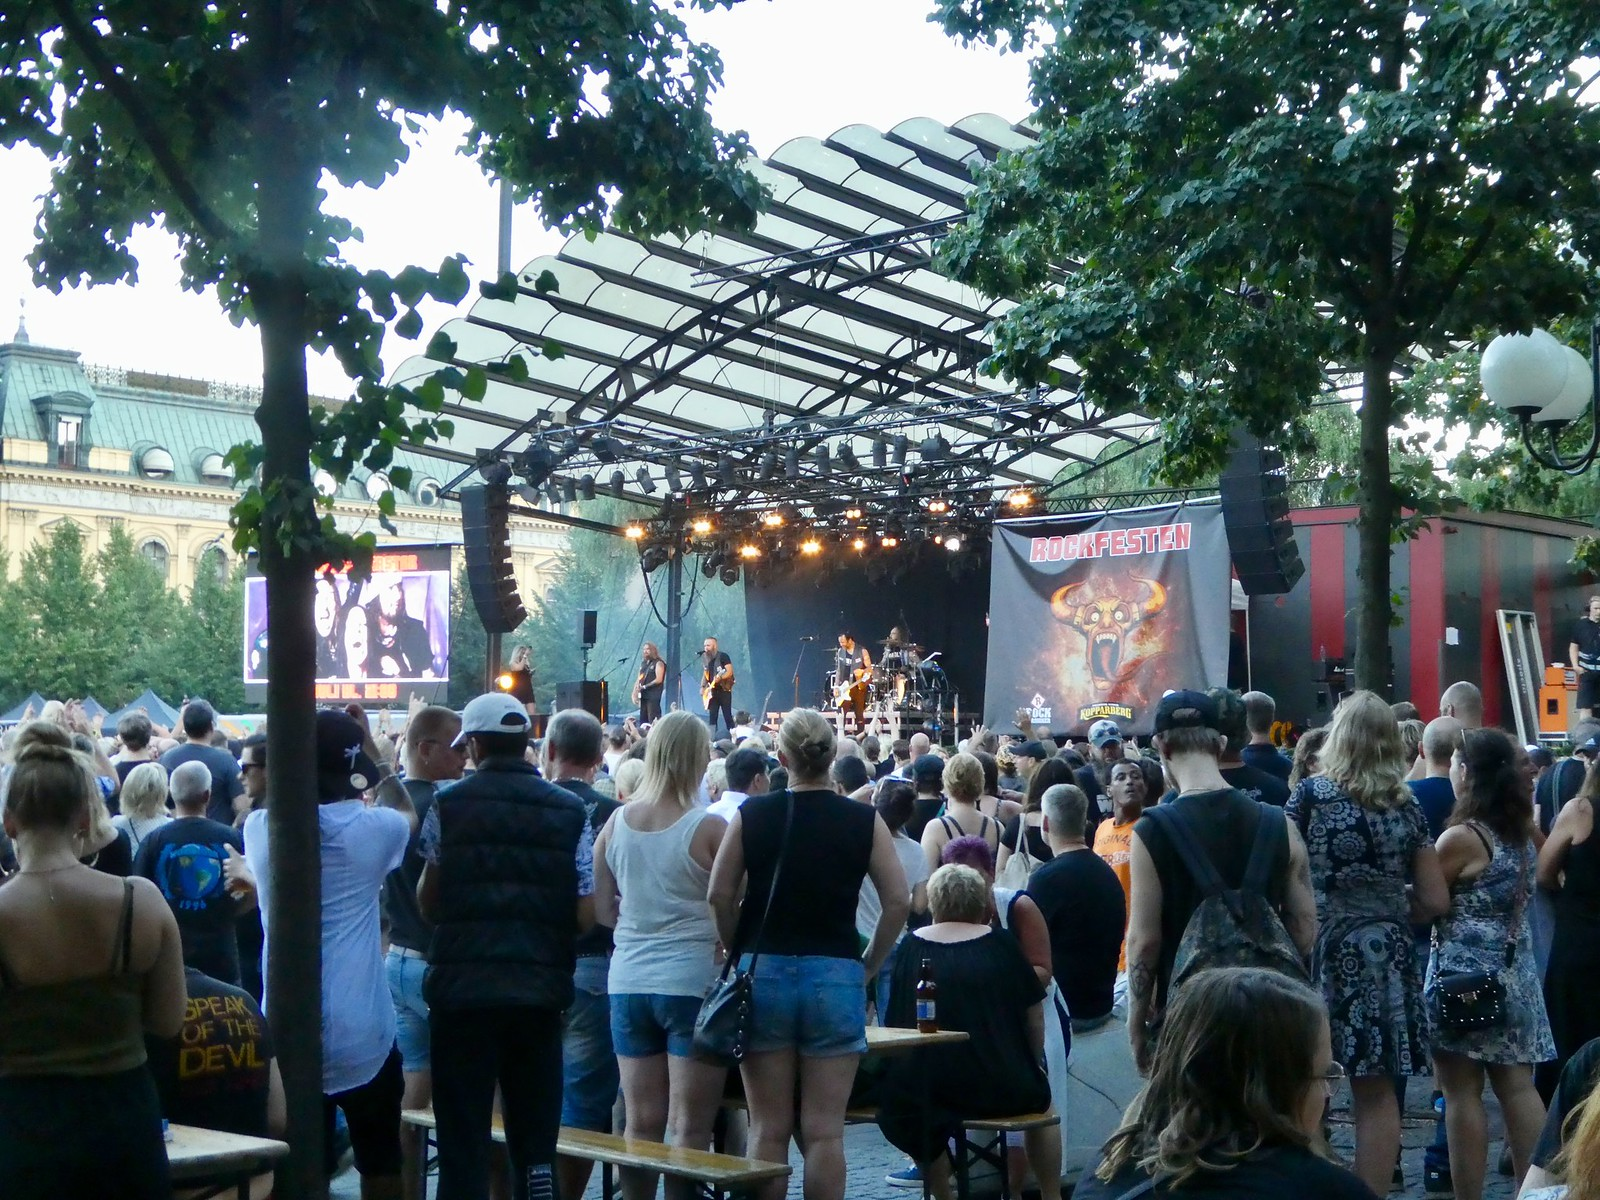 Rock Fest concert taking place in Kungsträdgården, Stockholm